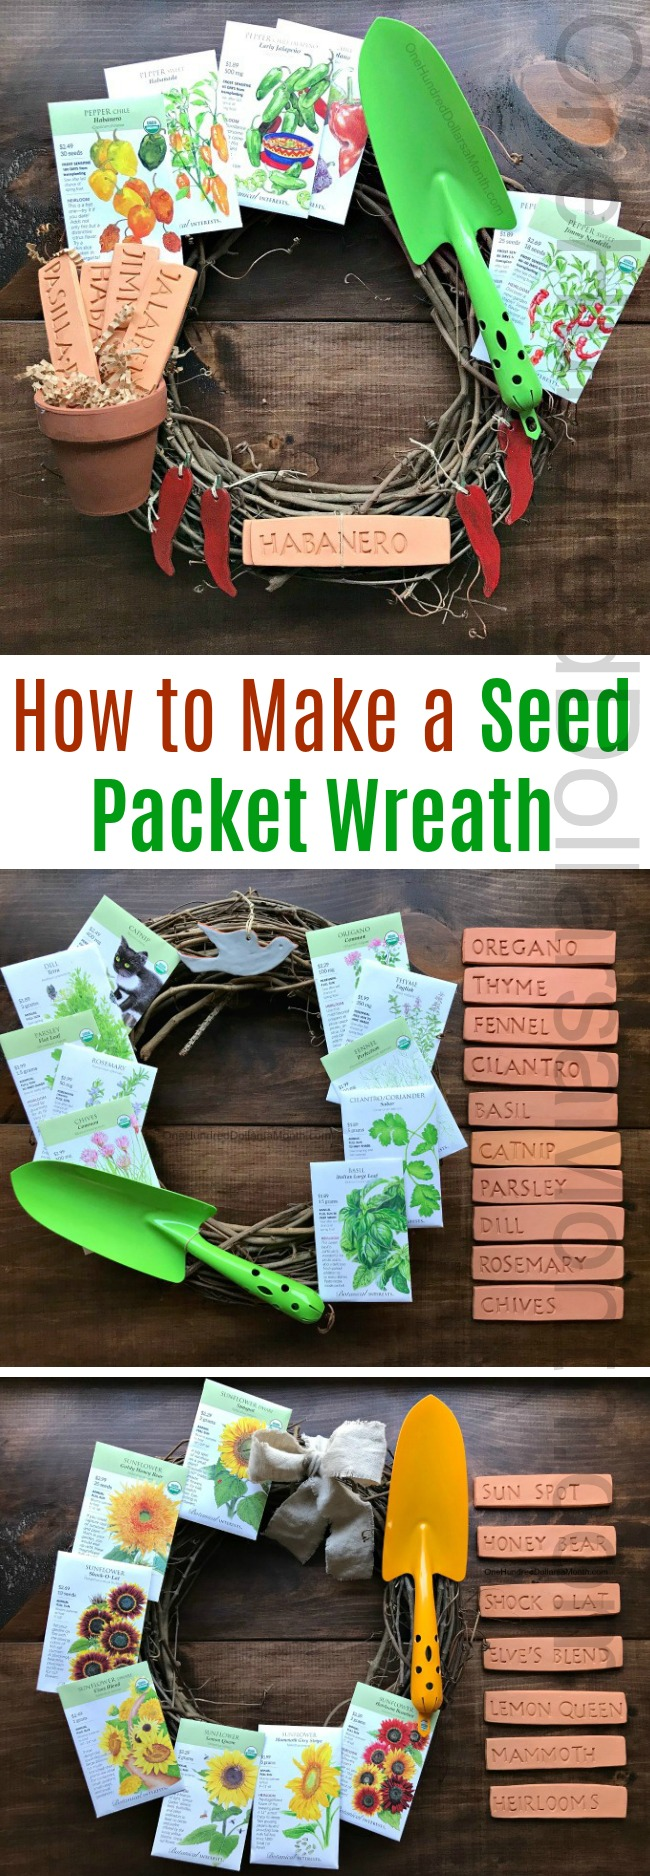 How to Make a Seed Packet Wreath